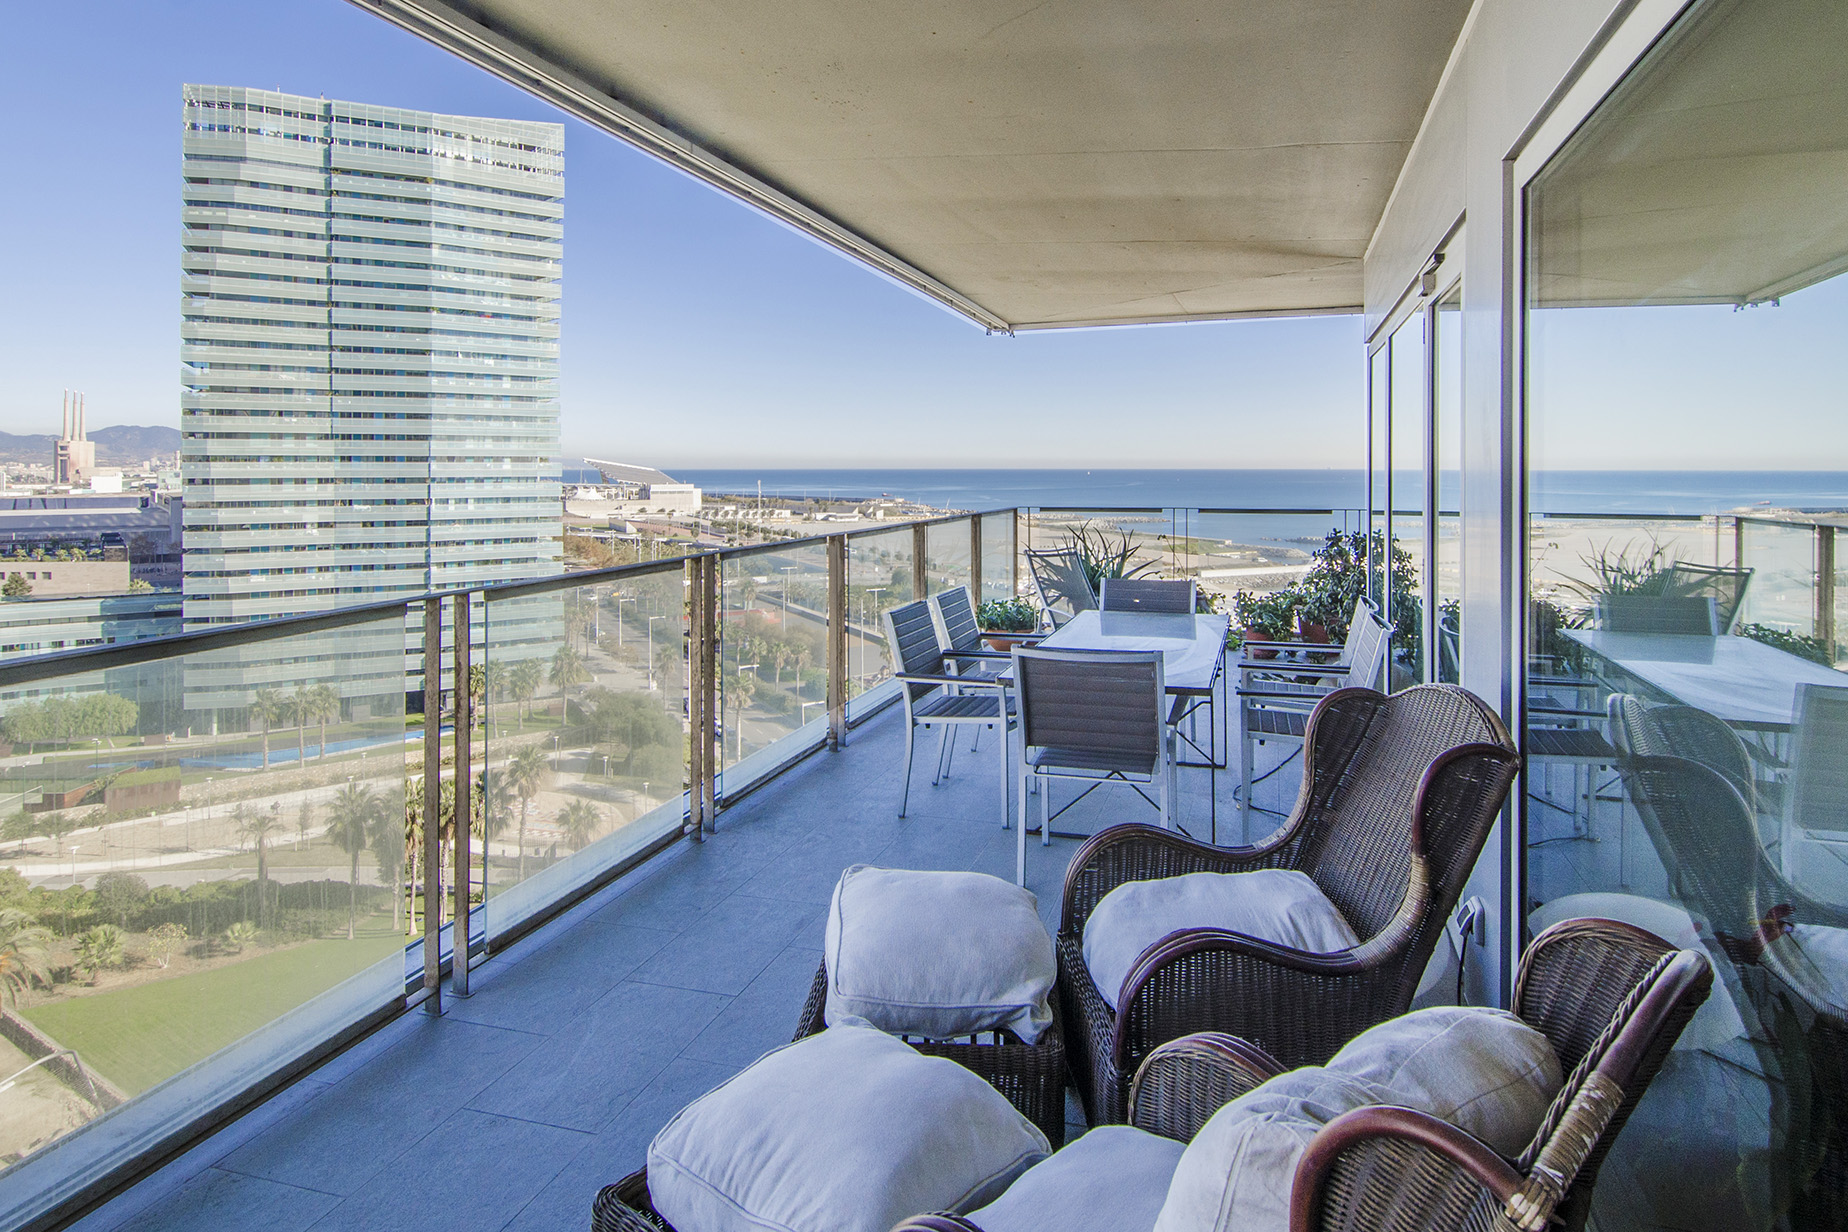 Apartment for Sale at Stunning Seafront Apartment in Diagonal Mar, Barcelona Barcelona City, Barcelona, 08019 Spain